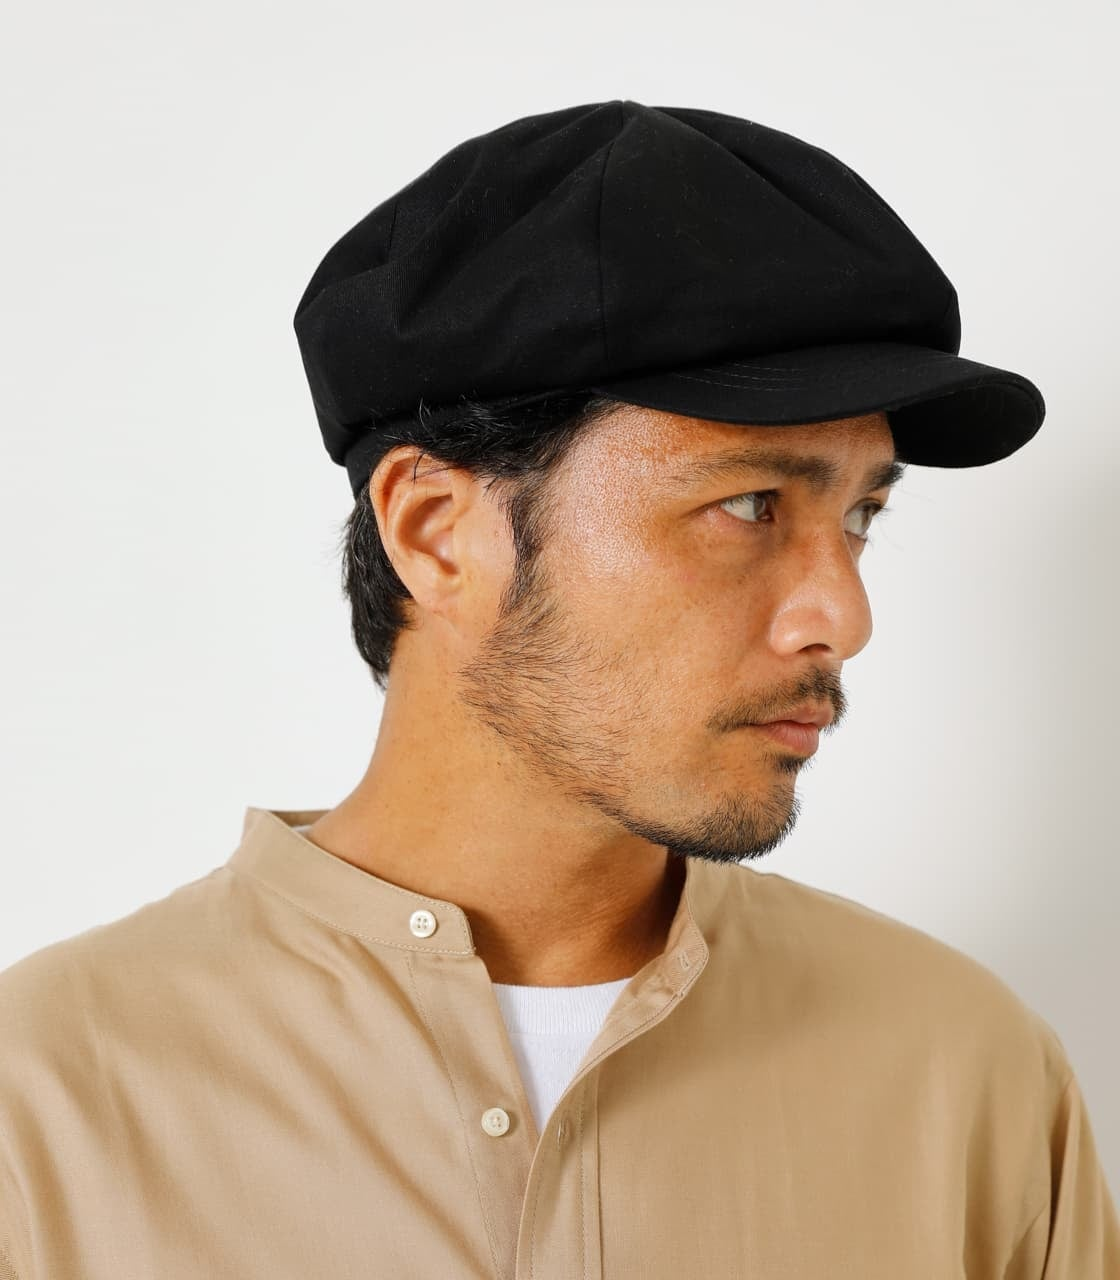 COTTON TWILL CASQUETTE/コットンツイルキャスケット 詳細画像 BLK 1